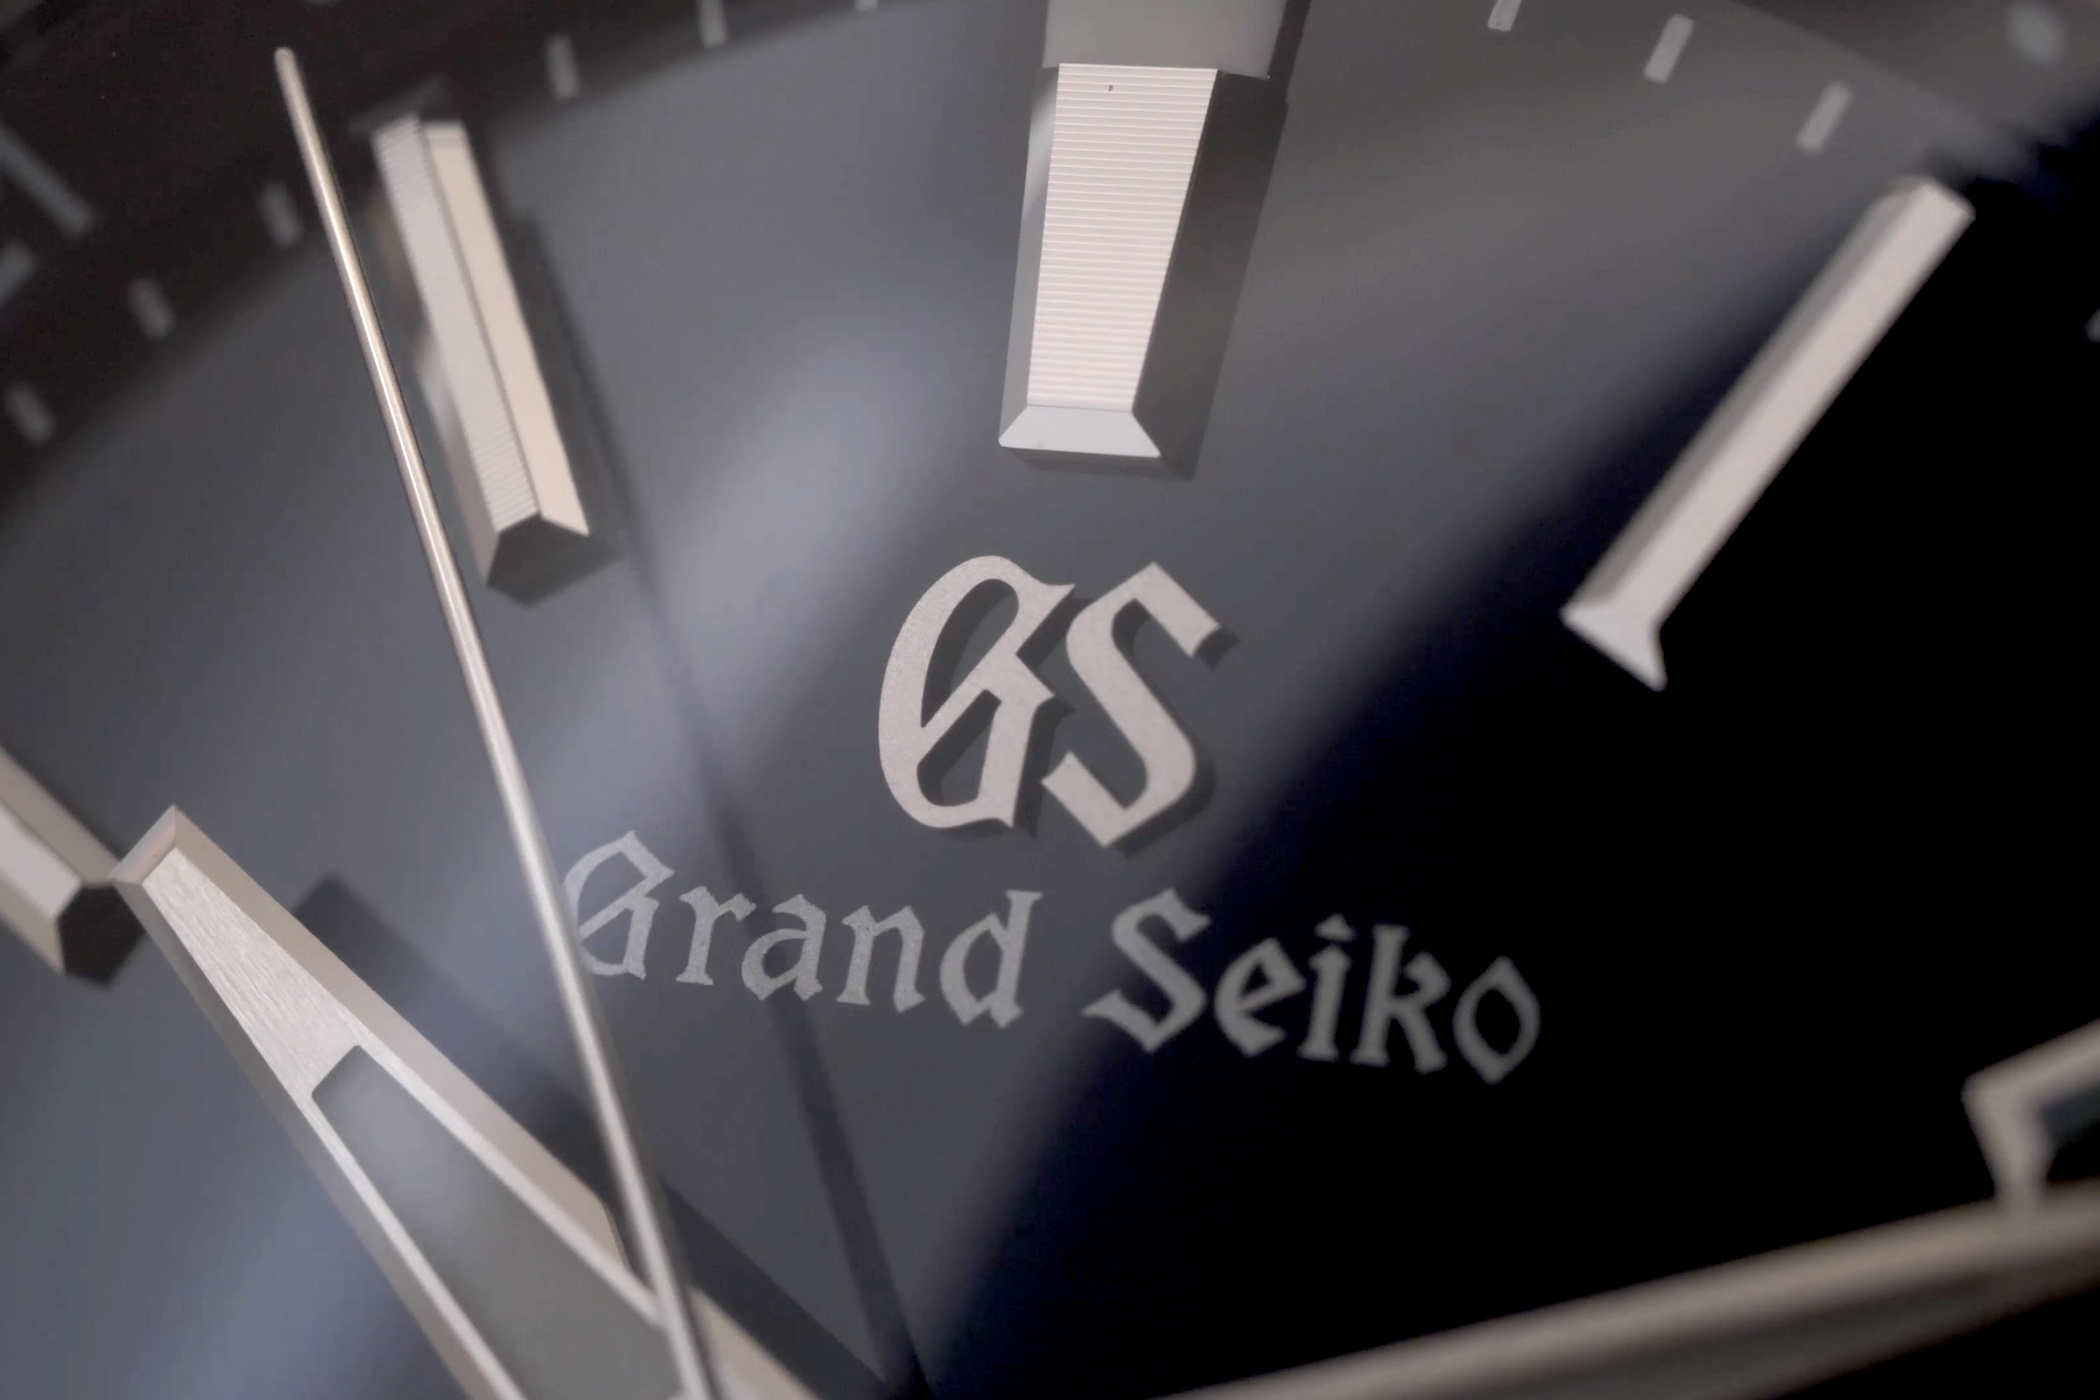 grand seiko europe video interview paris